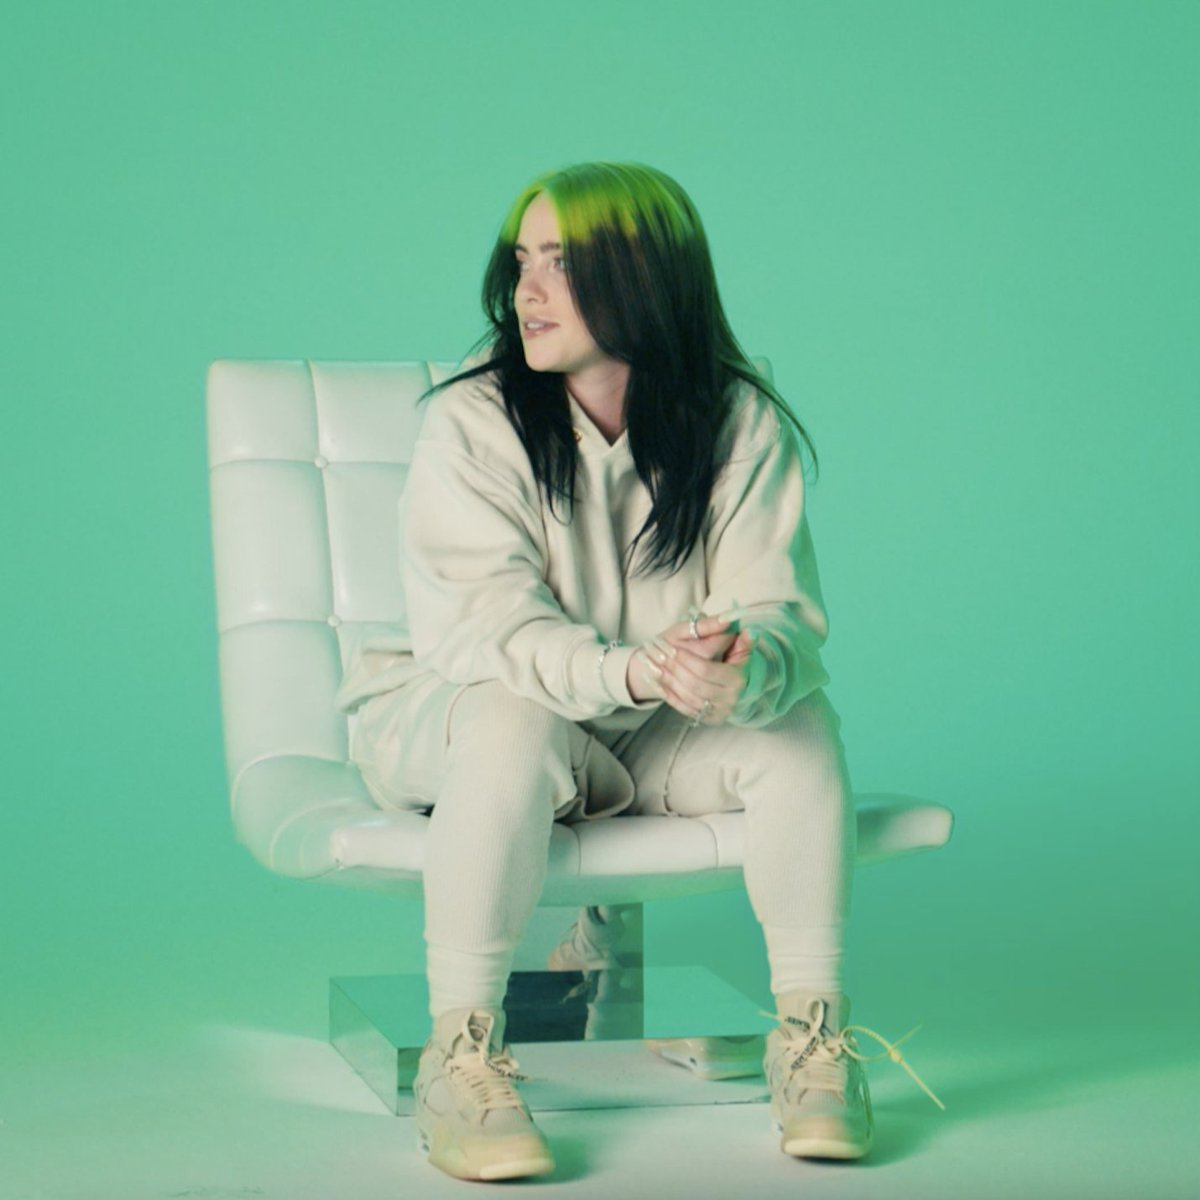 """.@billieeilish on her new film, """"There are certain things in the doc that I never planned on sharing with the world."""" Billie Eilish: The World's A Little Blurry, a film by R.J. Cutler, coming February 26 to theaters and Apple TV+ #TheWorldsALittleBlurry"""